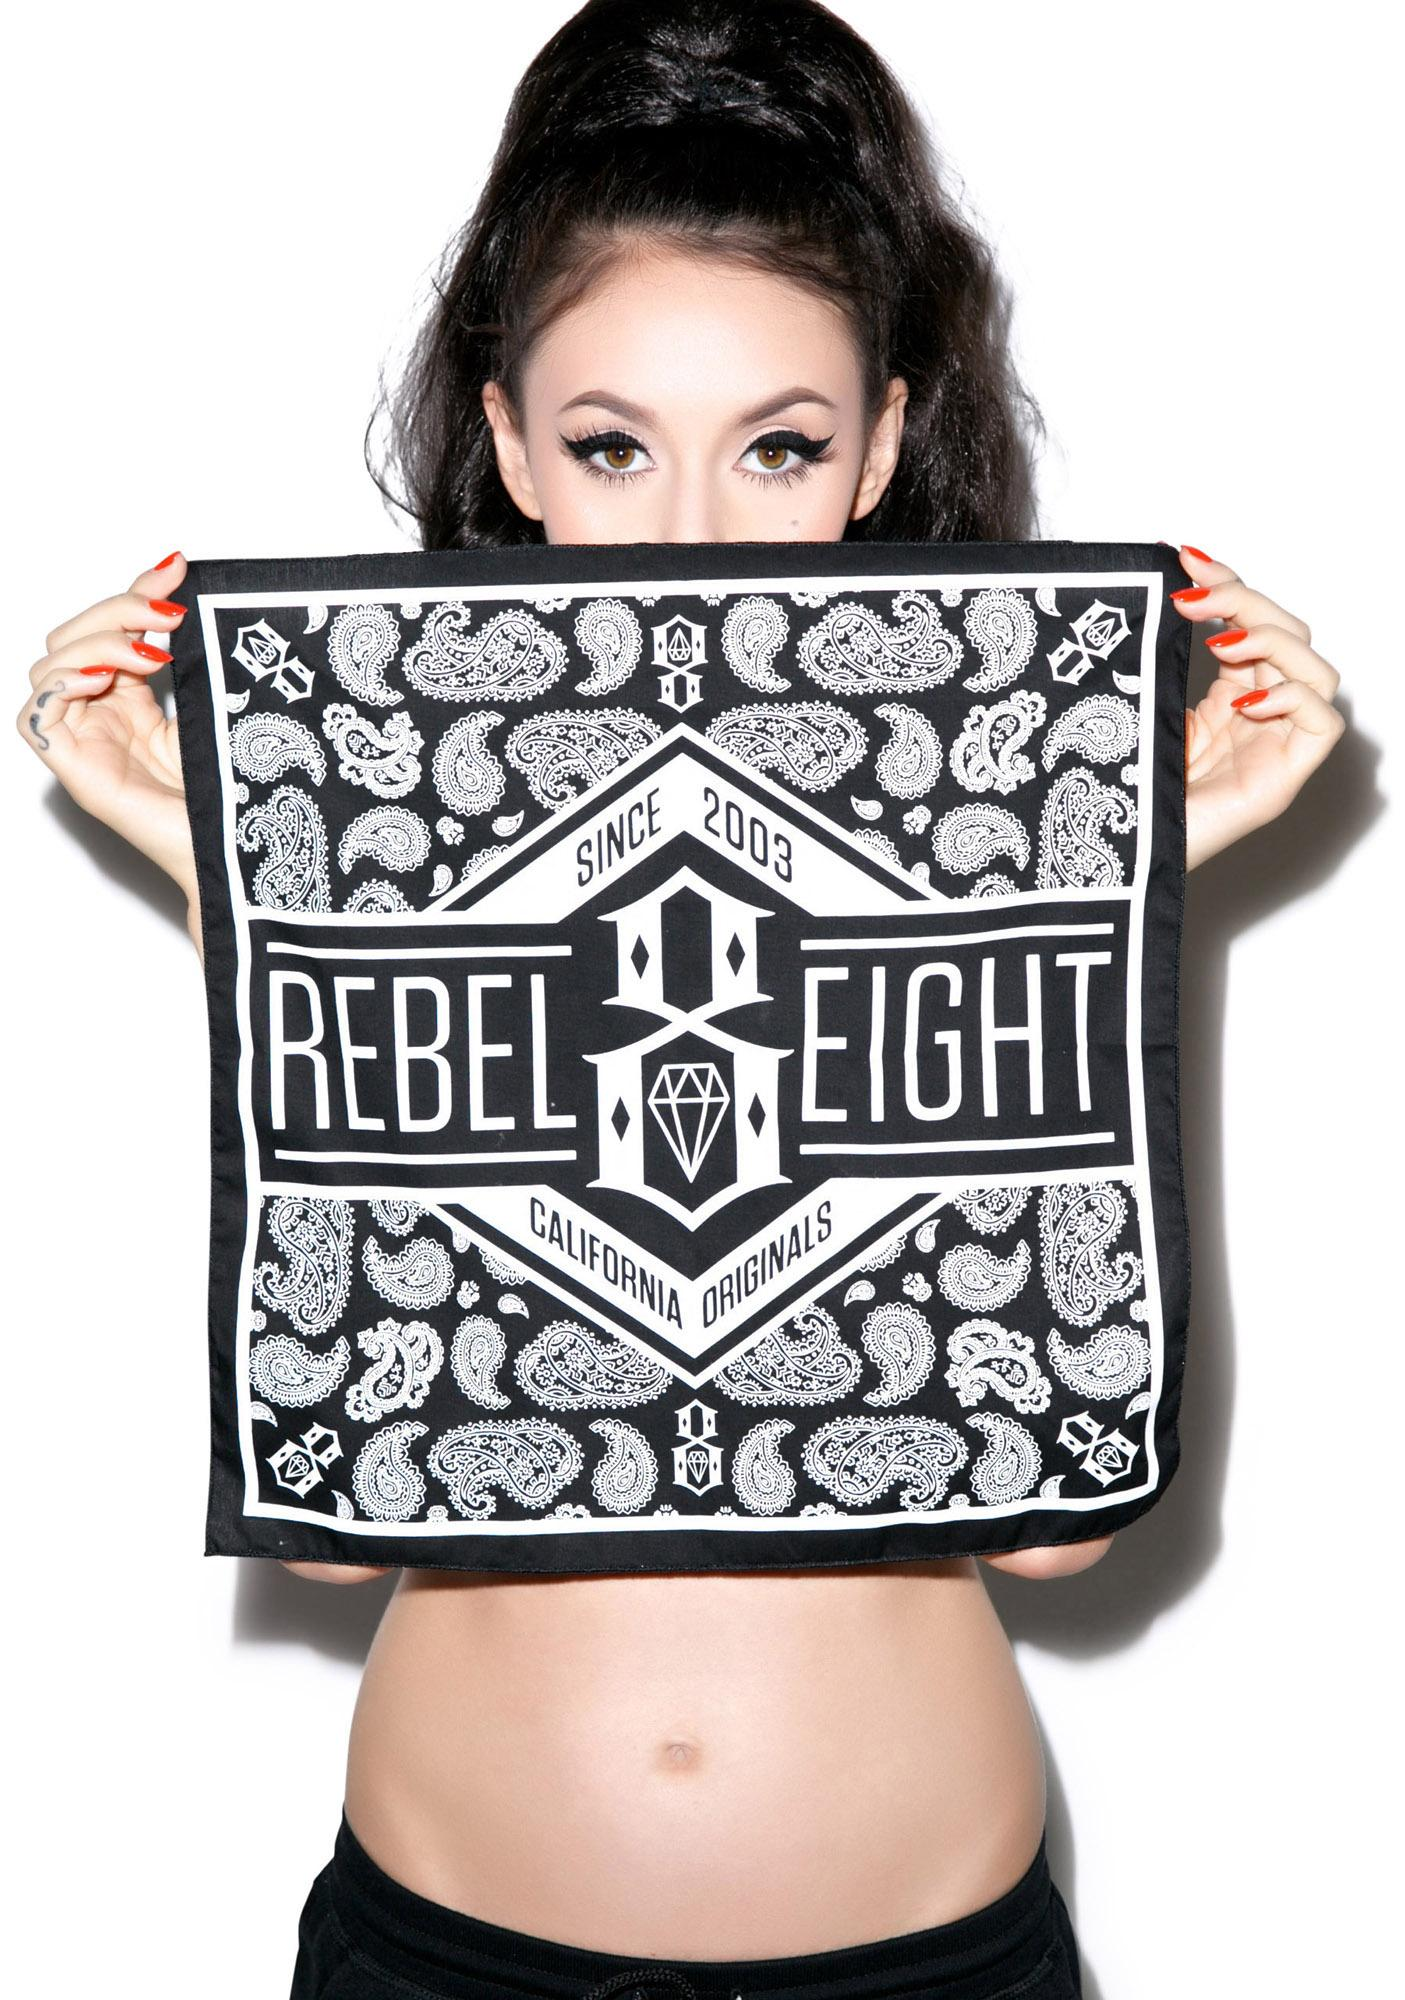 Rebel8 California Originals Bandana